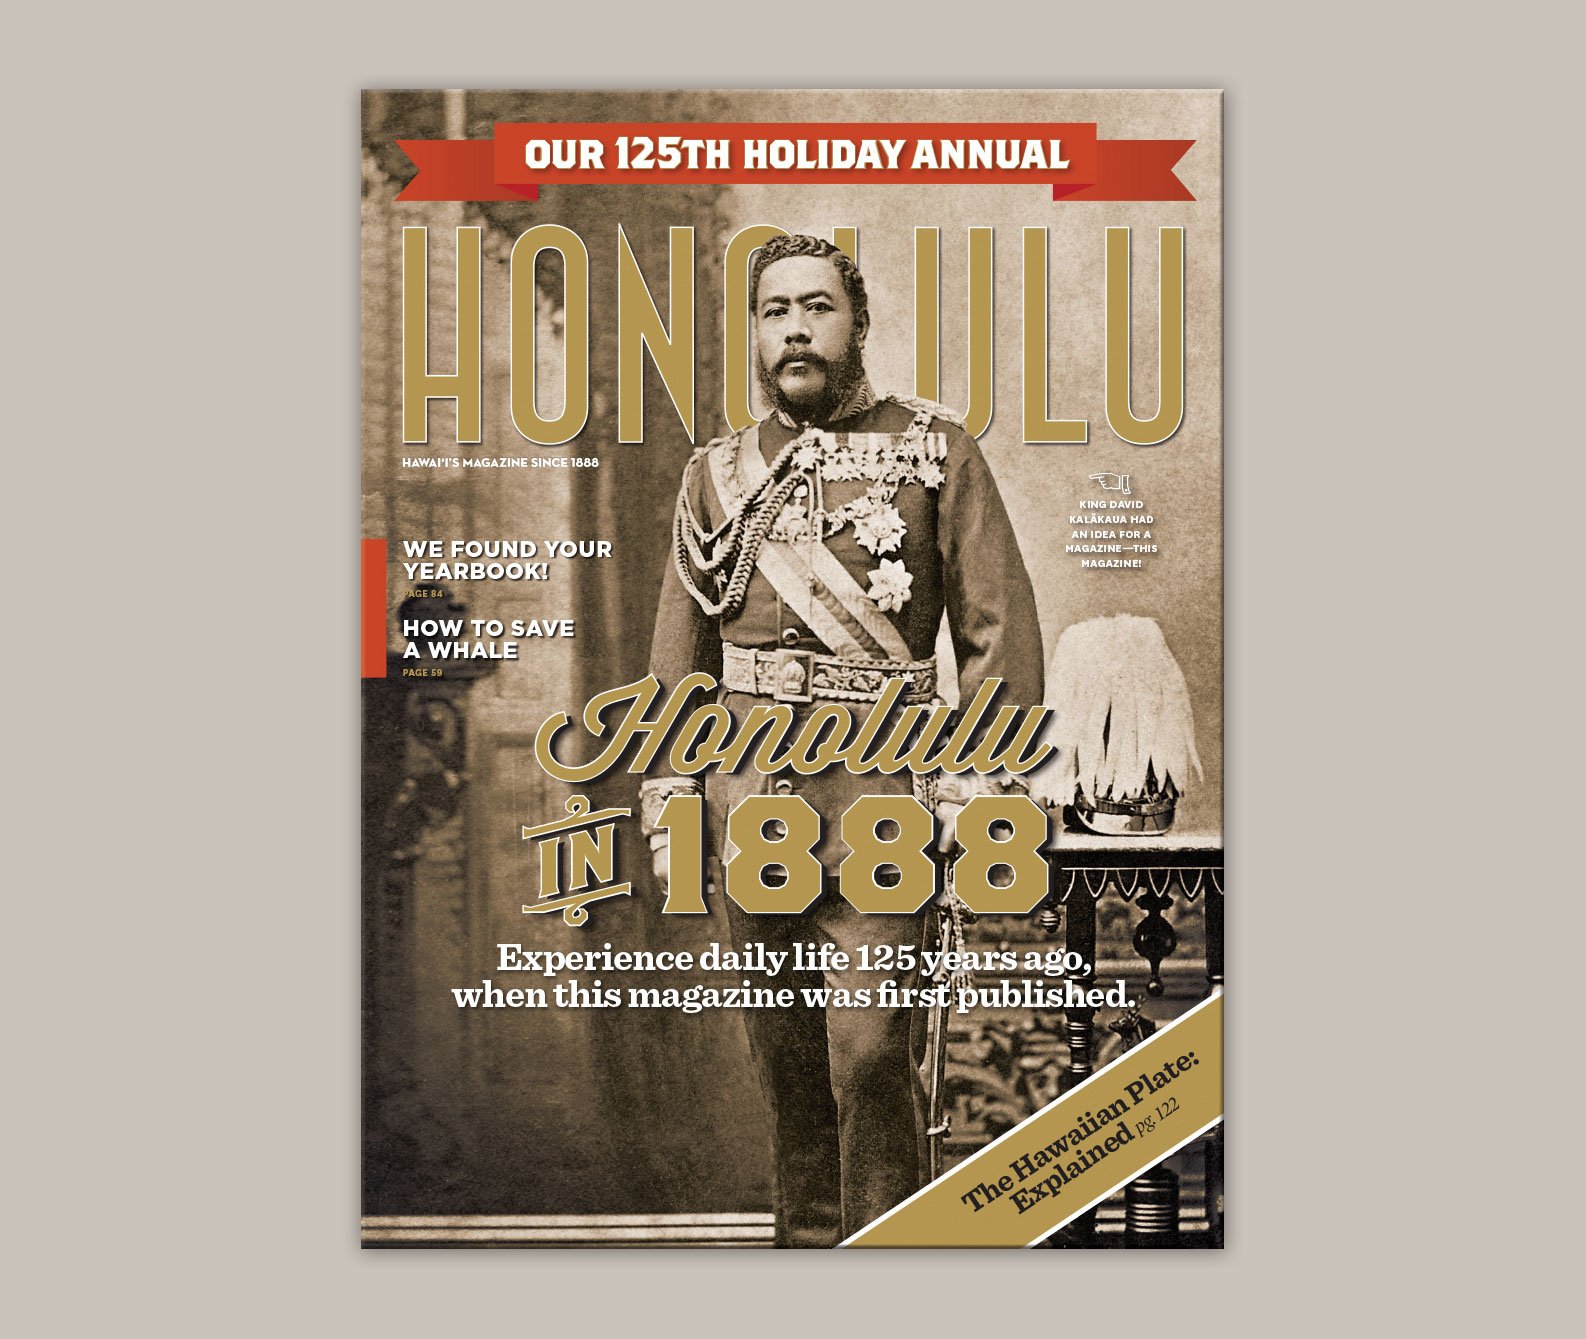 HONOLULU IN 1888 COVER AND FEATURE